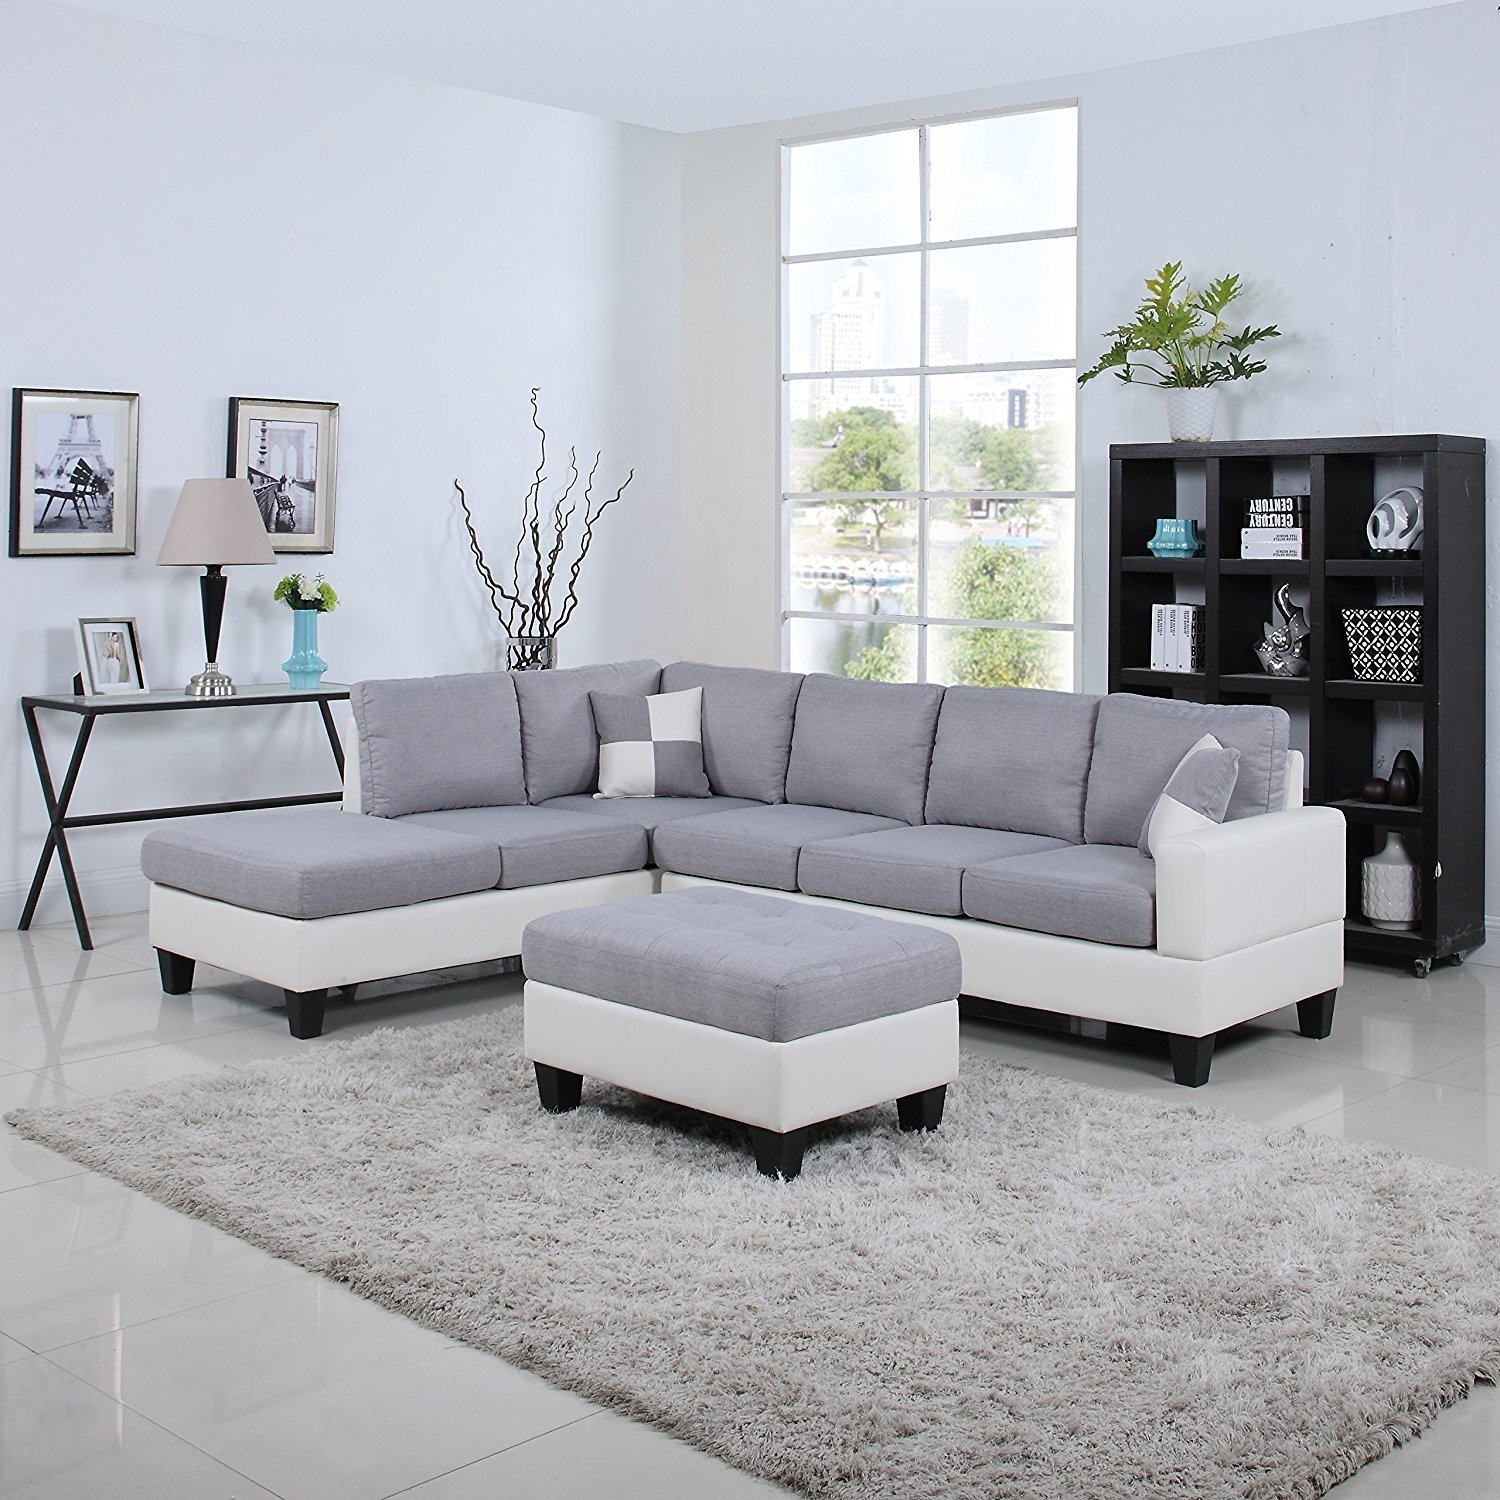 Details about Classic 2 Tone Large Fabric/ Bonded Leather Sectional Sofa,  Light Grey/White